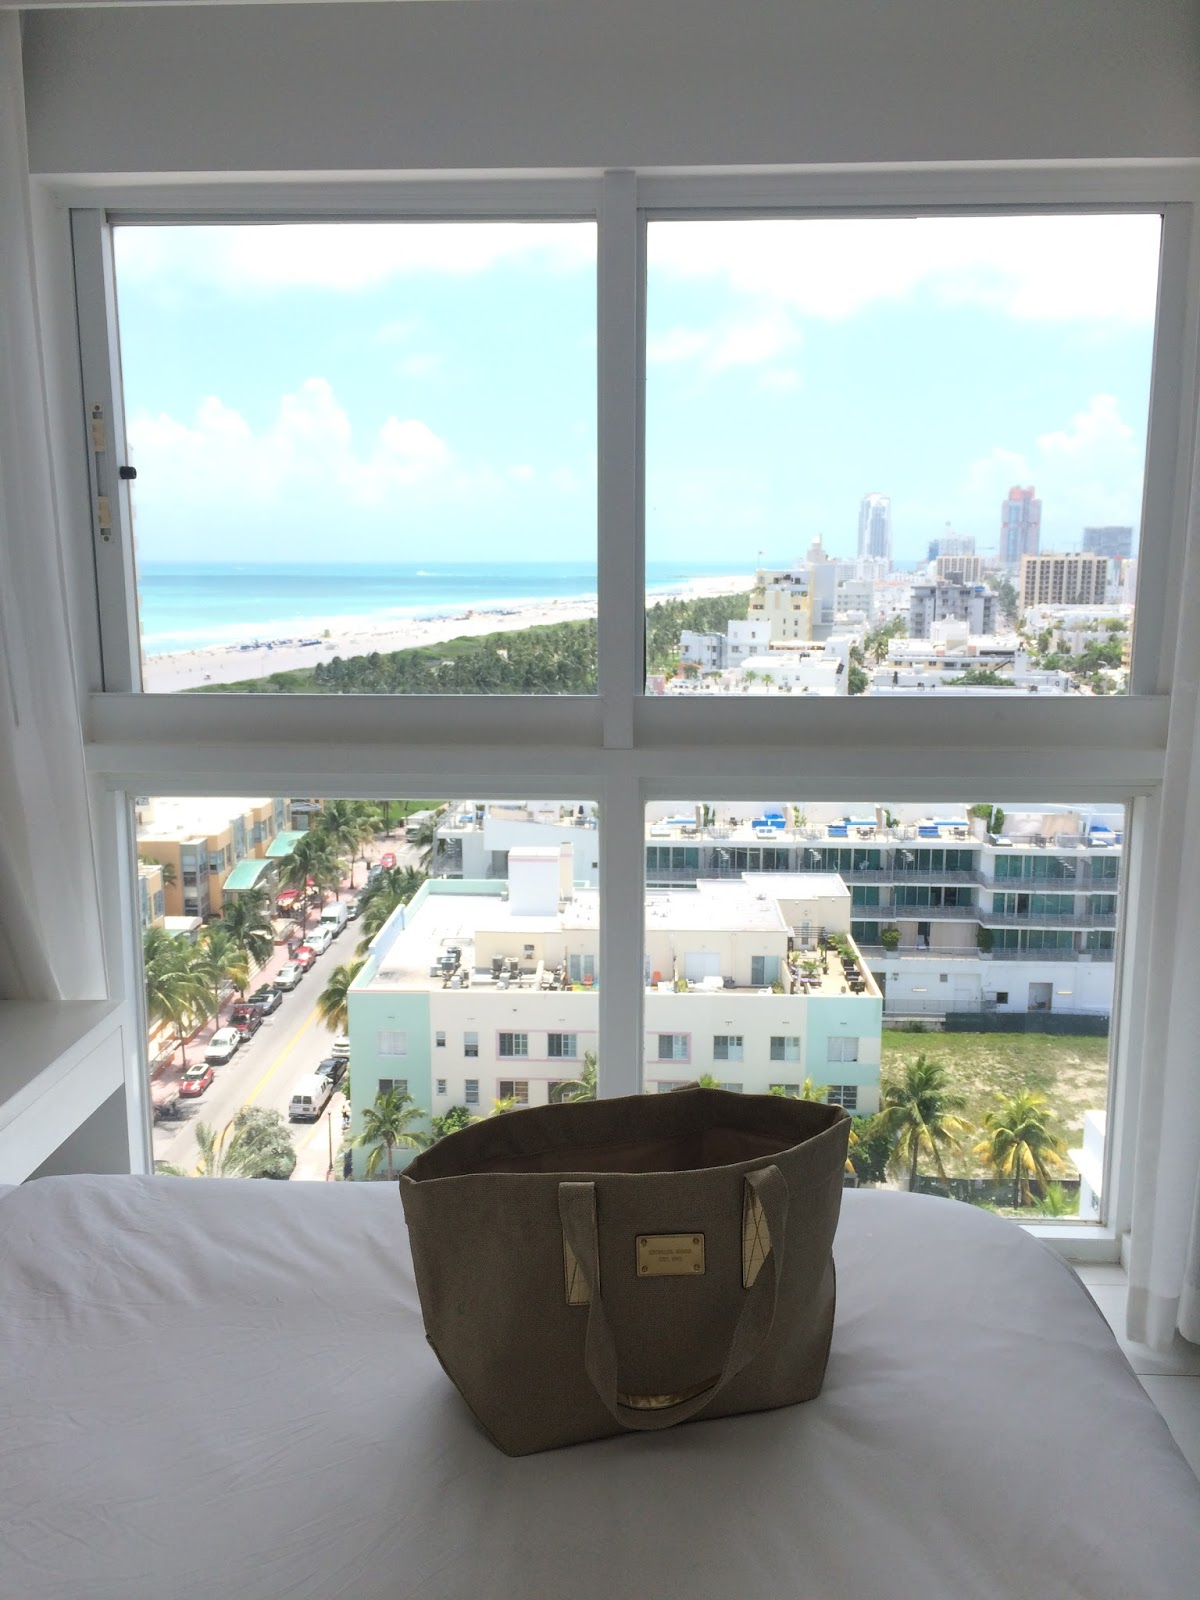 Home-Styling | Ana Antunes: Miami trip - Part I - Hotels ...